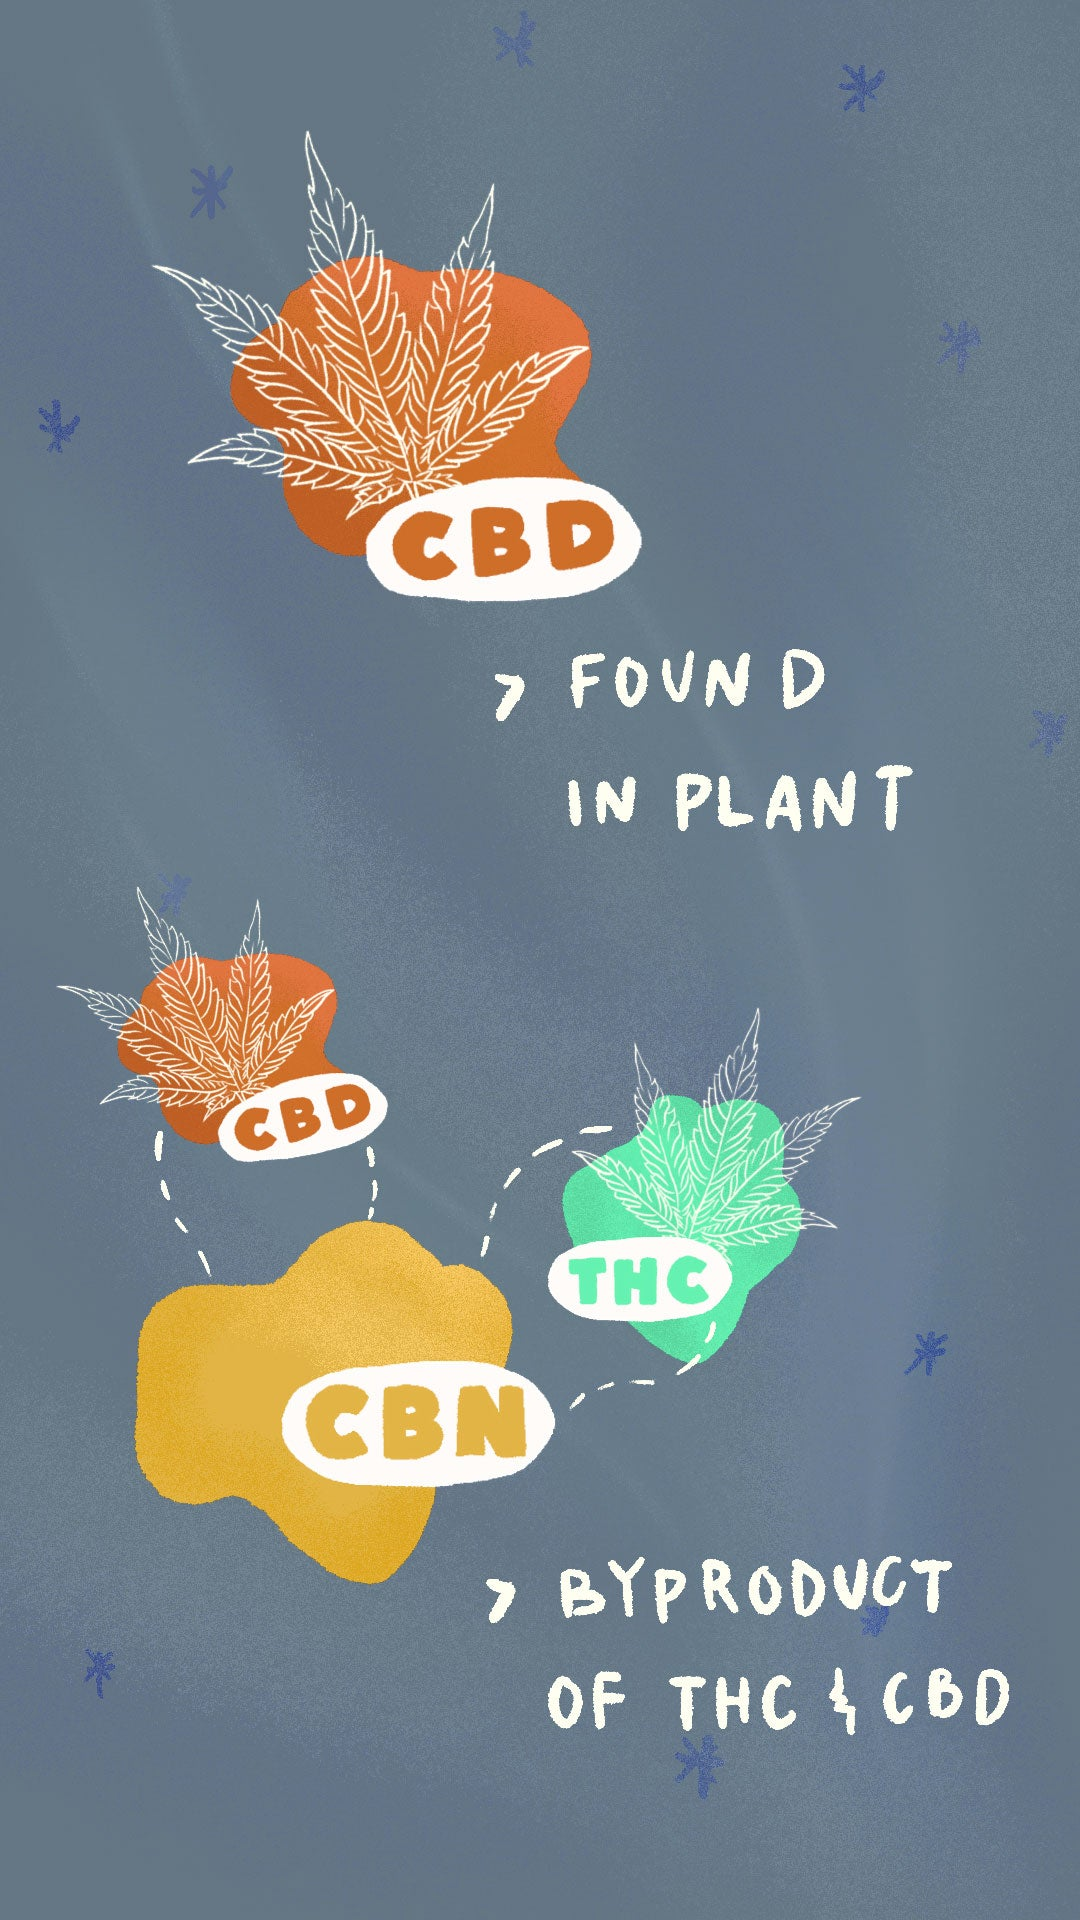 CBD is found in plants; CBN is byproduct by cannabinoids